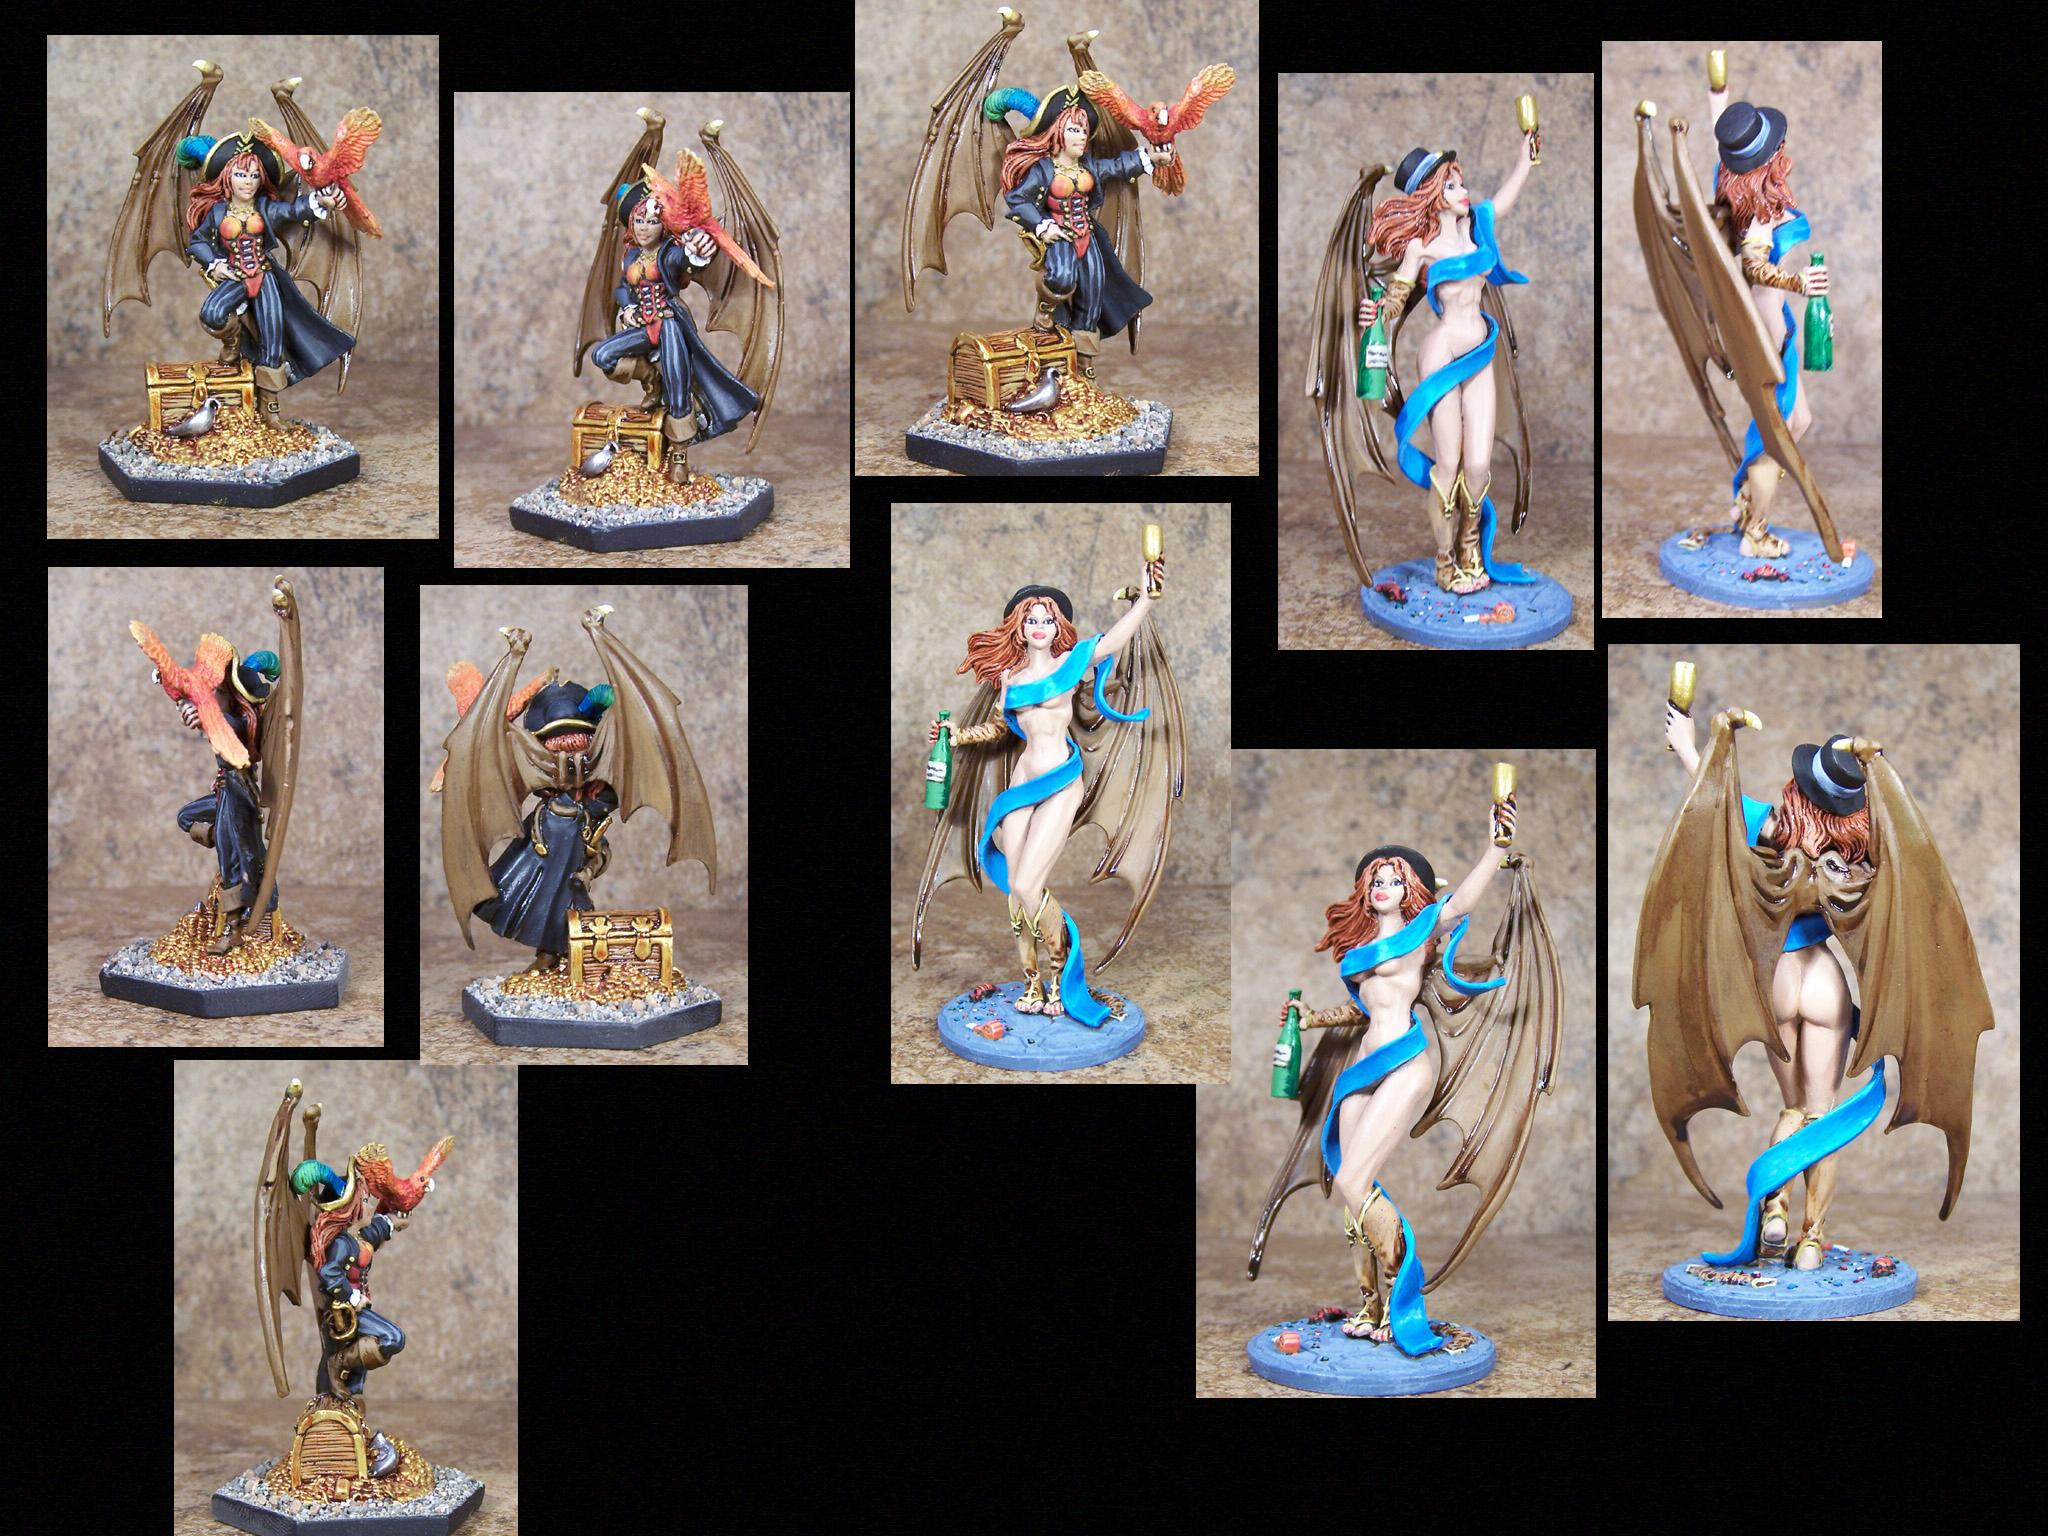 Daemons, Female, New Years, Pathfinders, Pro Painted, Reaper, Reaper Miniatures, Reaper Minis, Rpg, Sexy, Succubus, Warhammer Fantasy